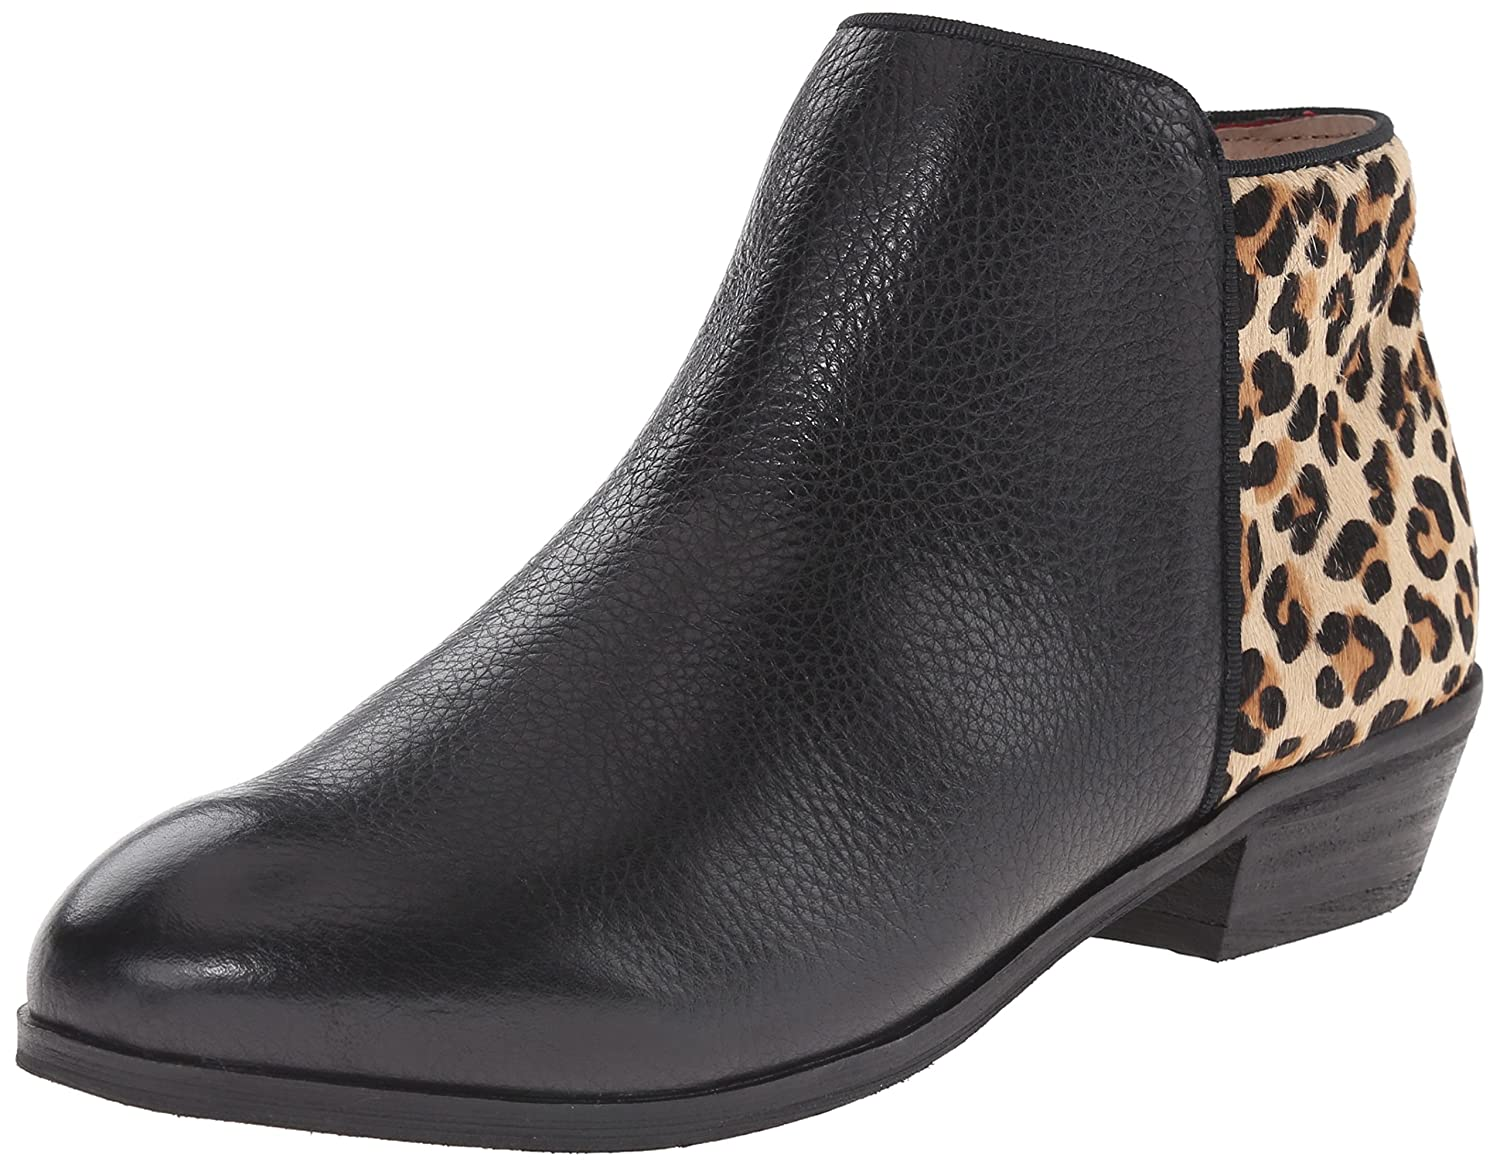 SoftWalk Women's Rocklin Chelsea Boot B00S06SDG4 8.5 W US|Black/Leopard